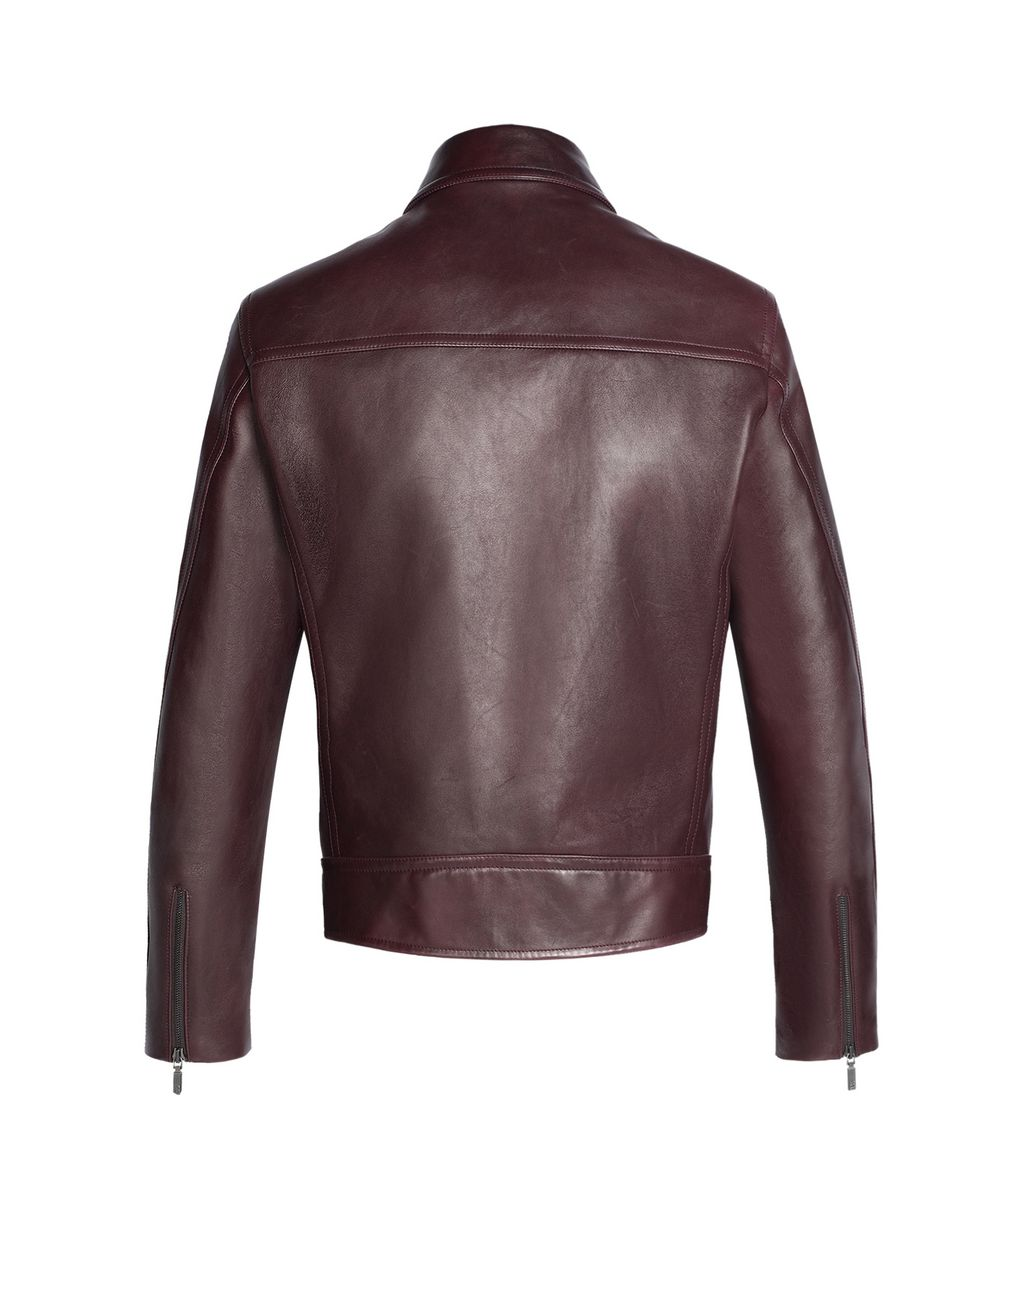 BRIONI Burgundy Leather Biker Jacket Outerwear U r